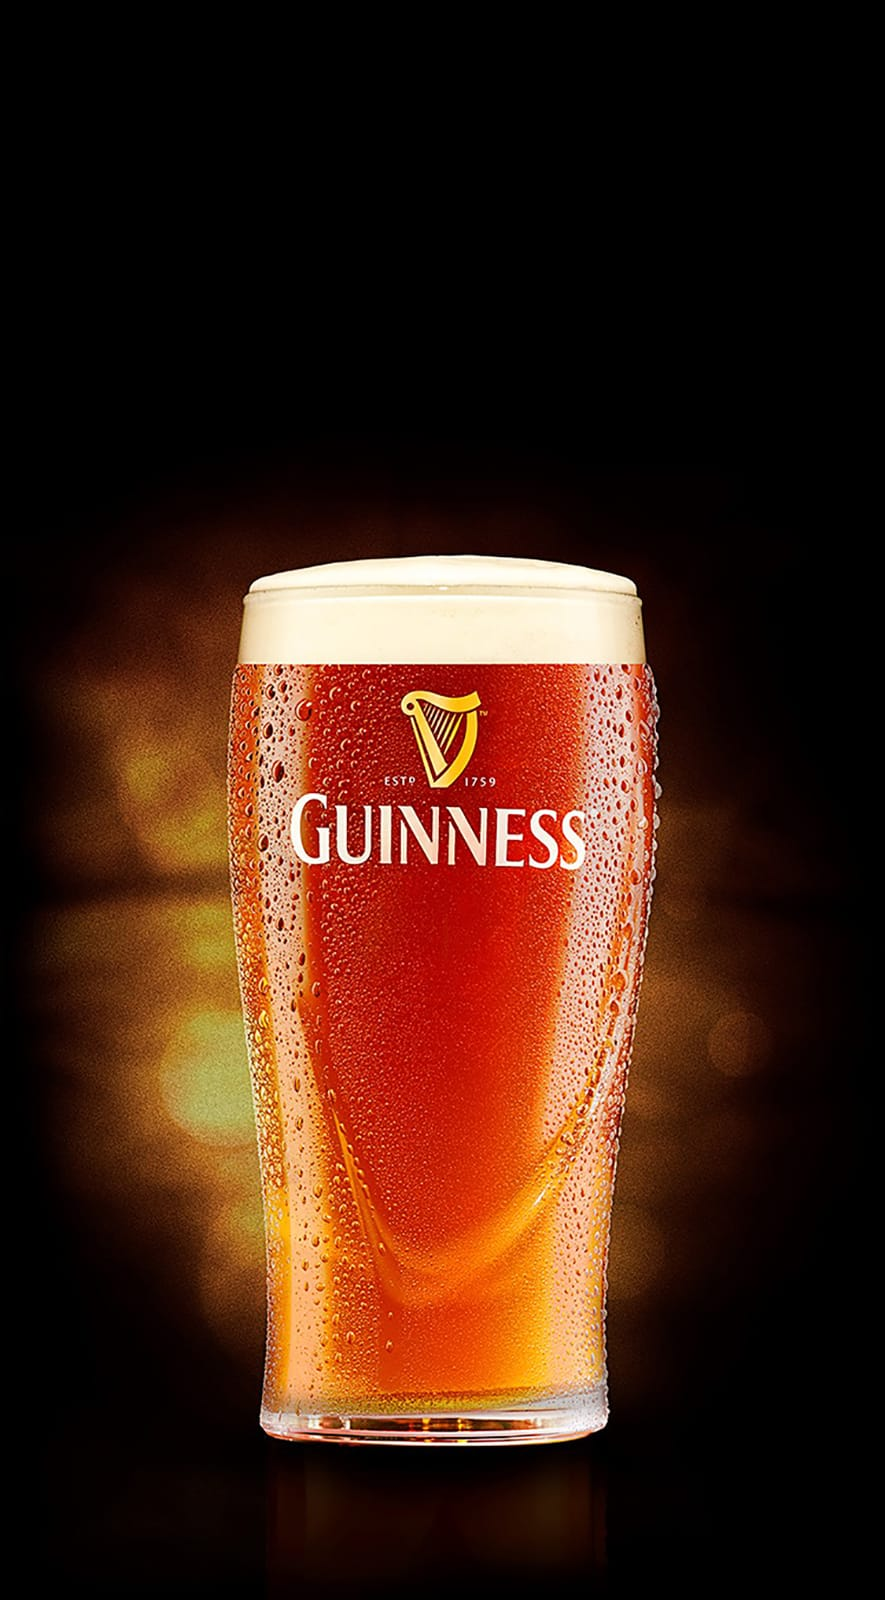 Guinness beers our beer products guinness - Guinness beer images ...